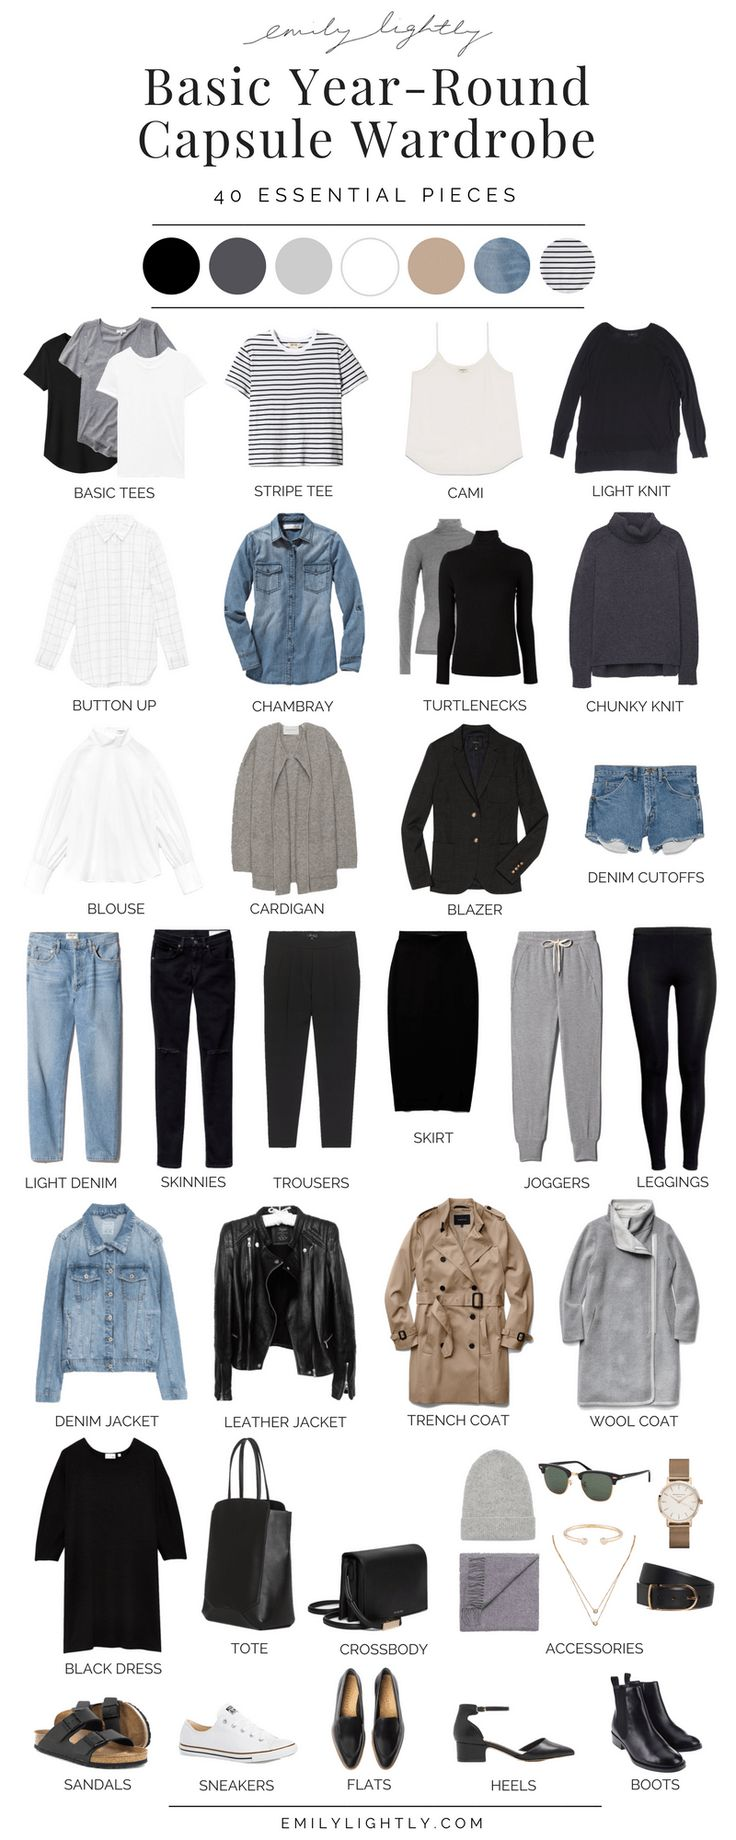 73 Best Capsule Wardrobe Images On Pinterest